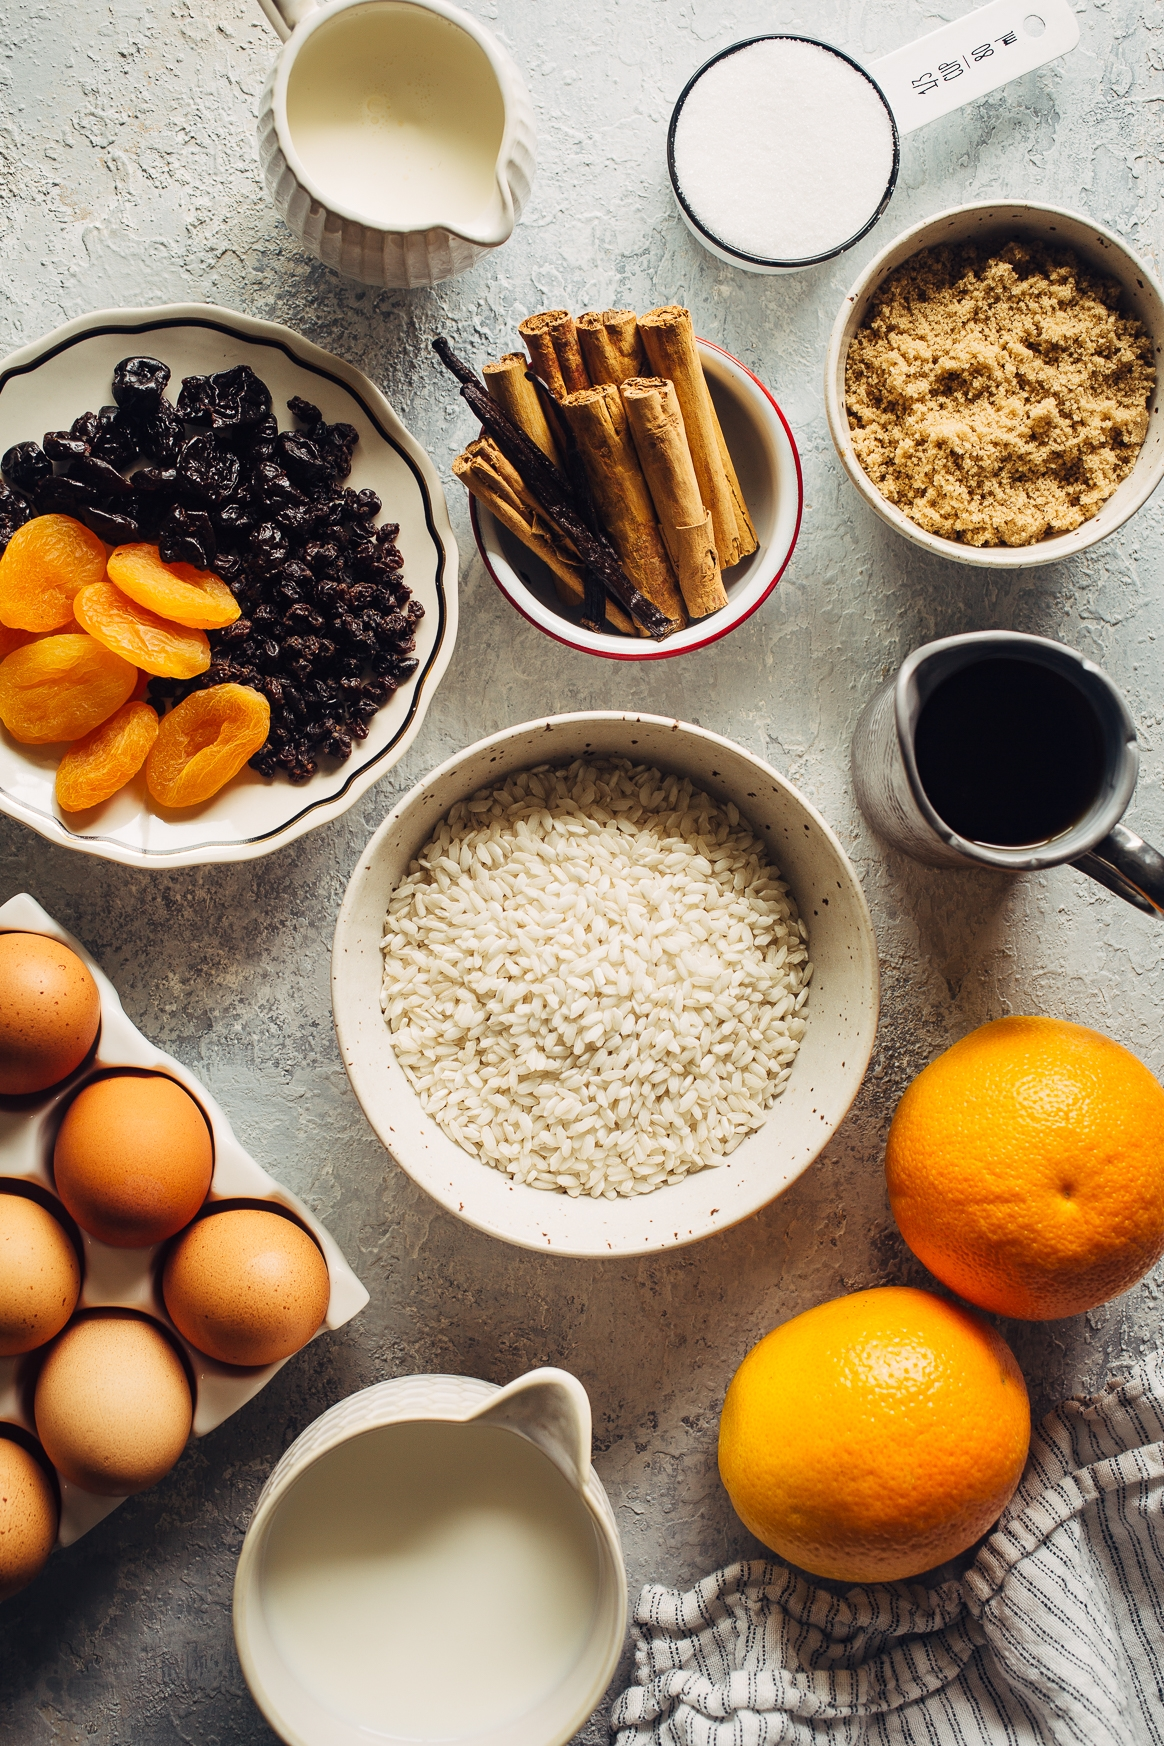 Instant Pot Rice Pudding Ingredients